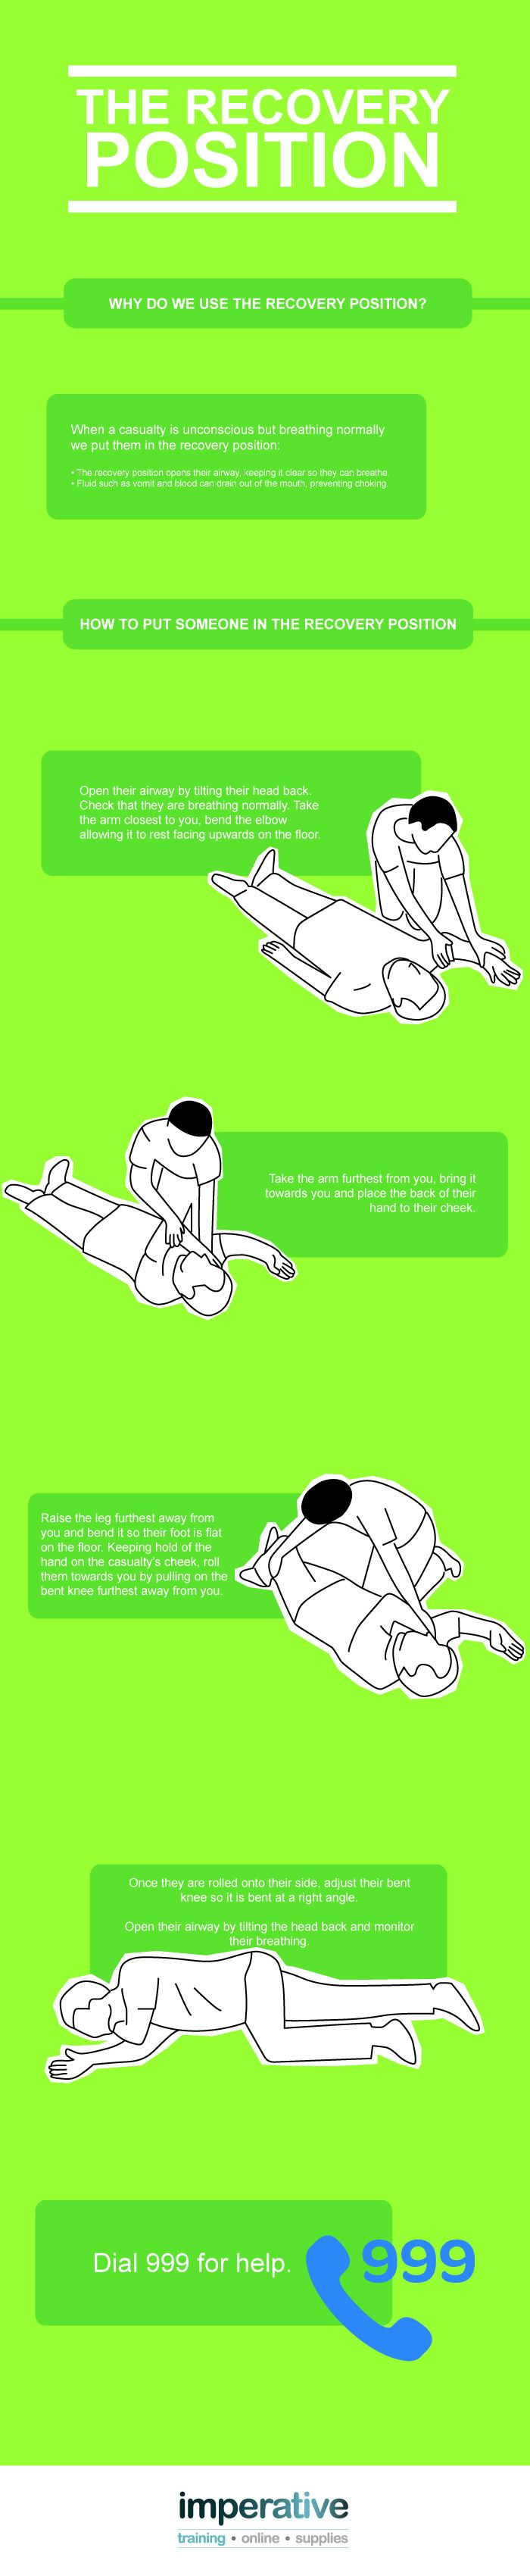 How to put someone in The Recovery Position.